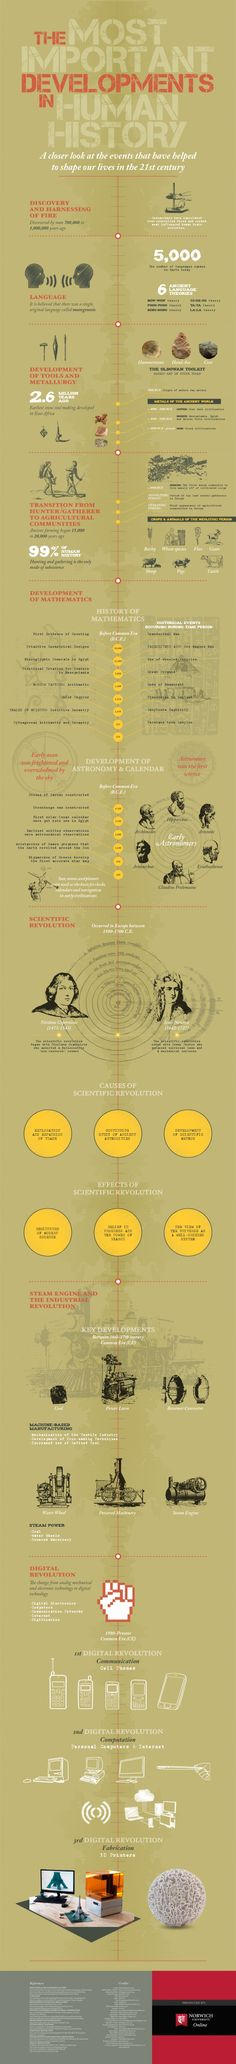 The Most Important Developments In Human History #Infographics - Lightscap3s.com